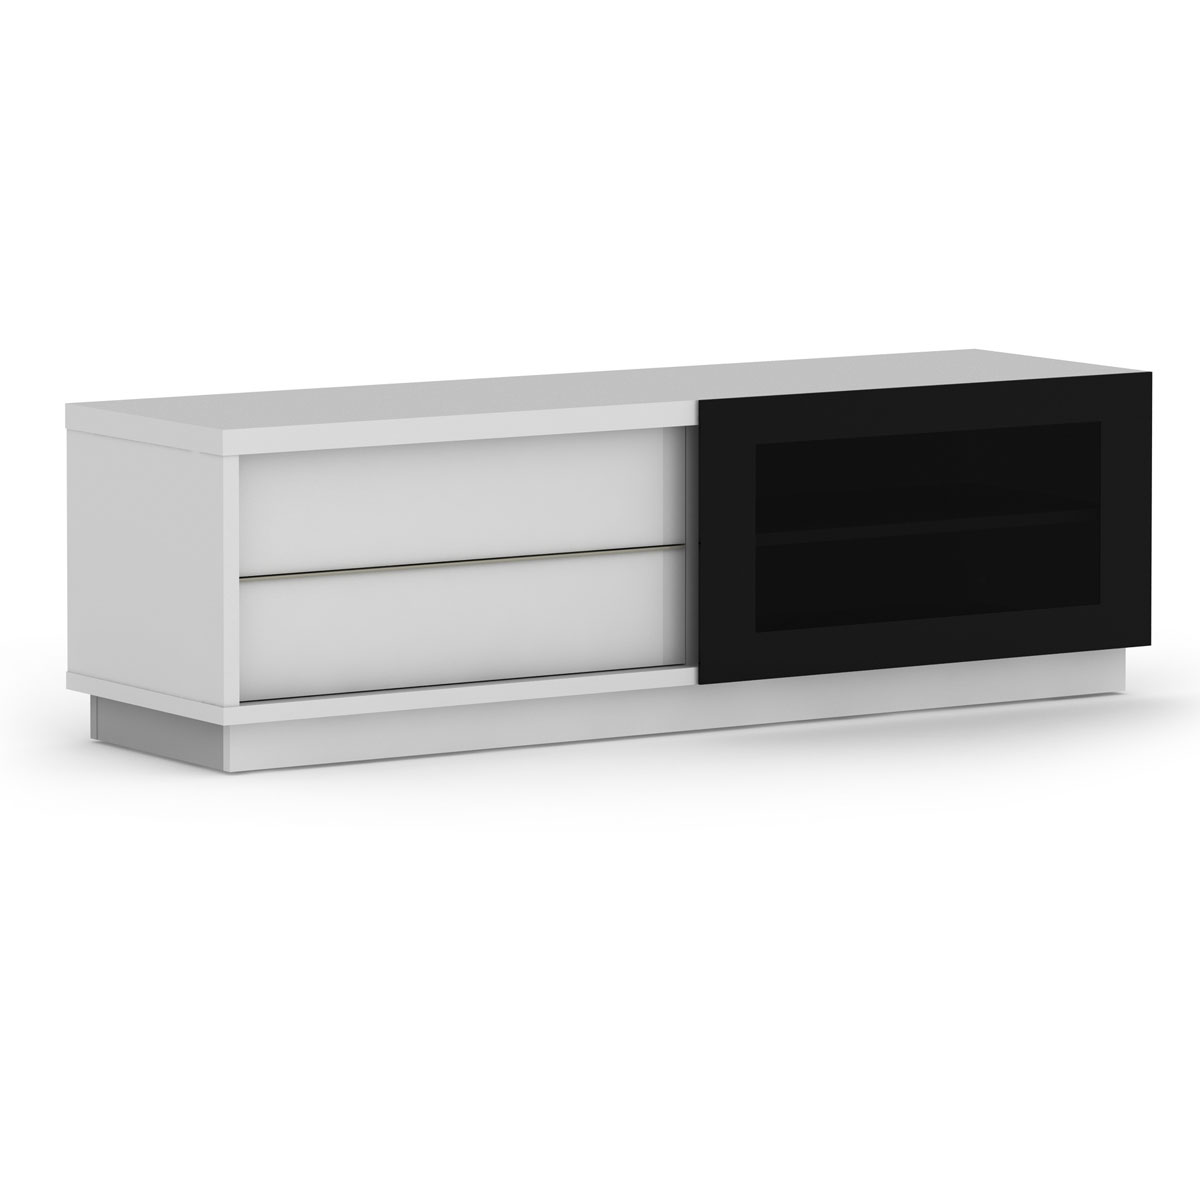 elmob harmony ha 160 02 blanc meuble tv elmob sur. Black Bedroom Furniture Sets. Home Design Ideas